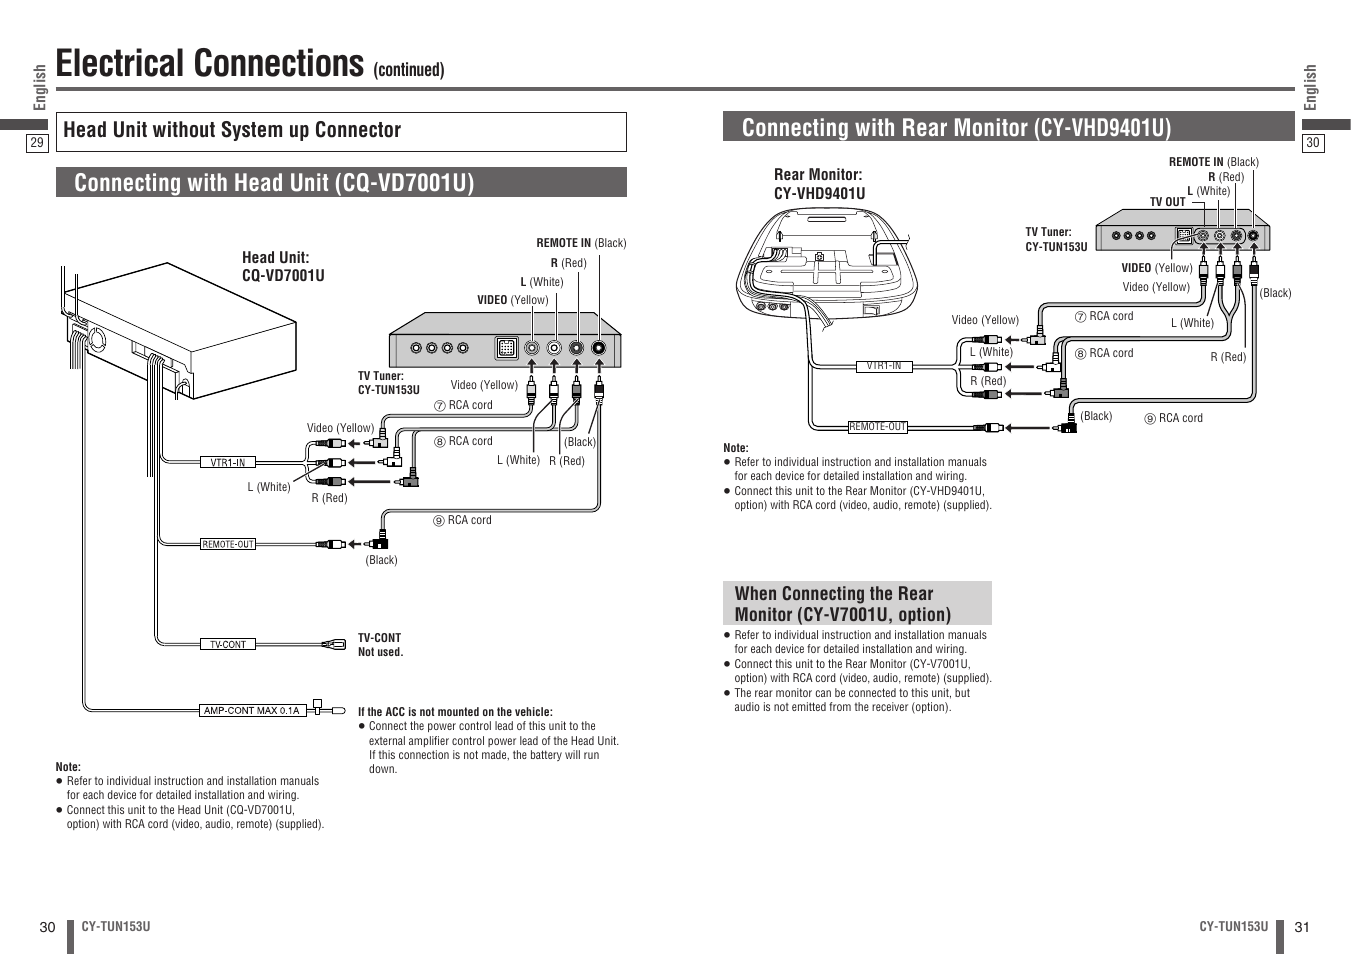 Electrical Connections Connecting With Head Unit Cq Vd7001u